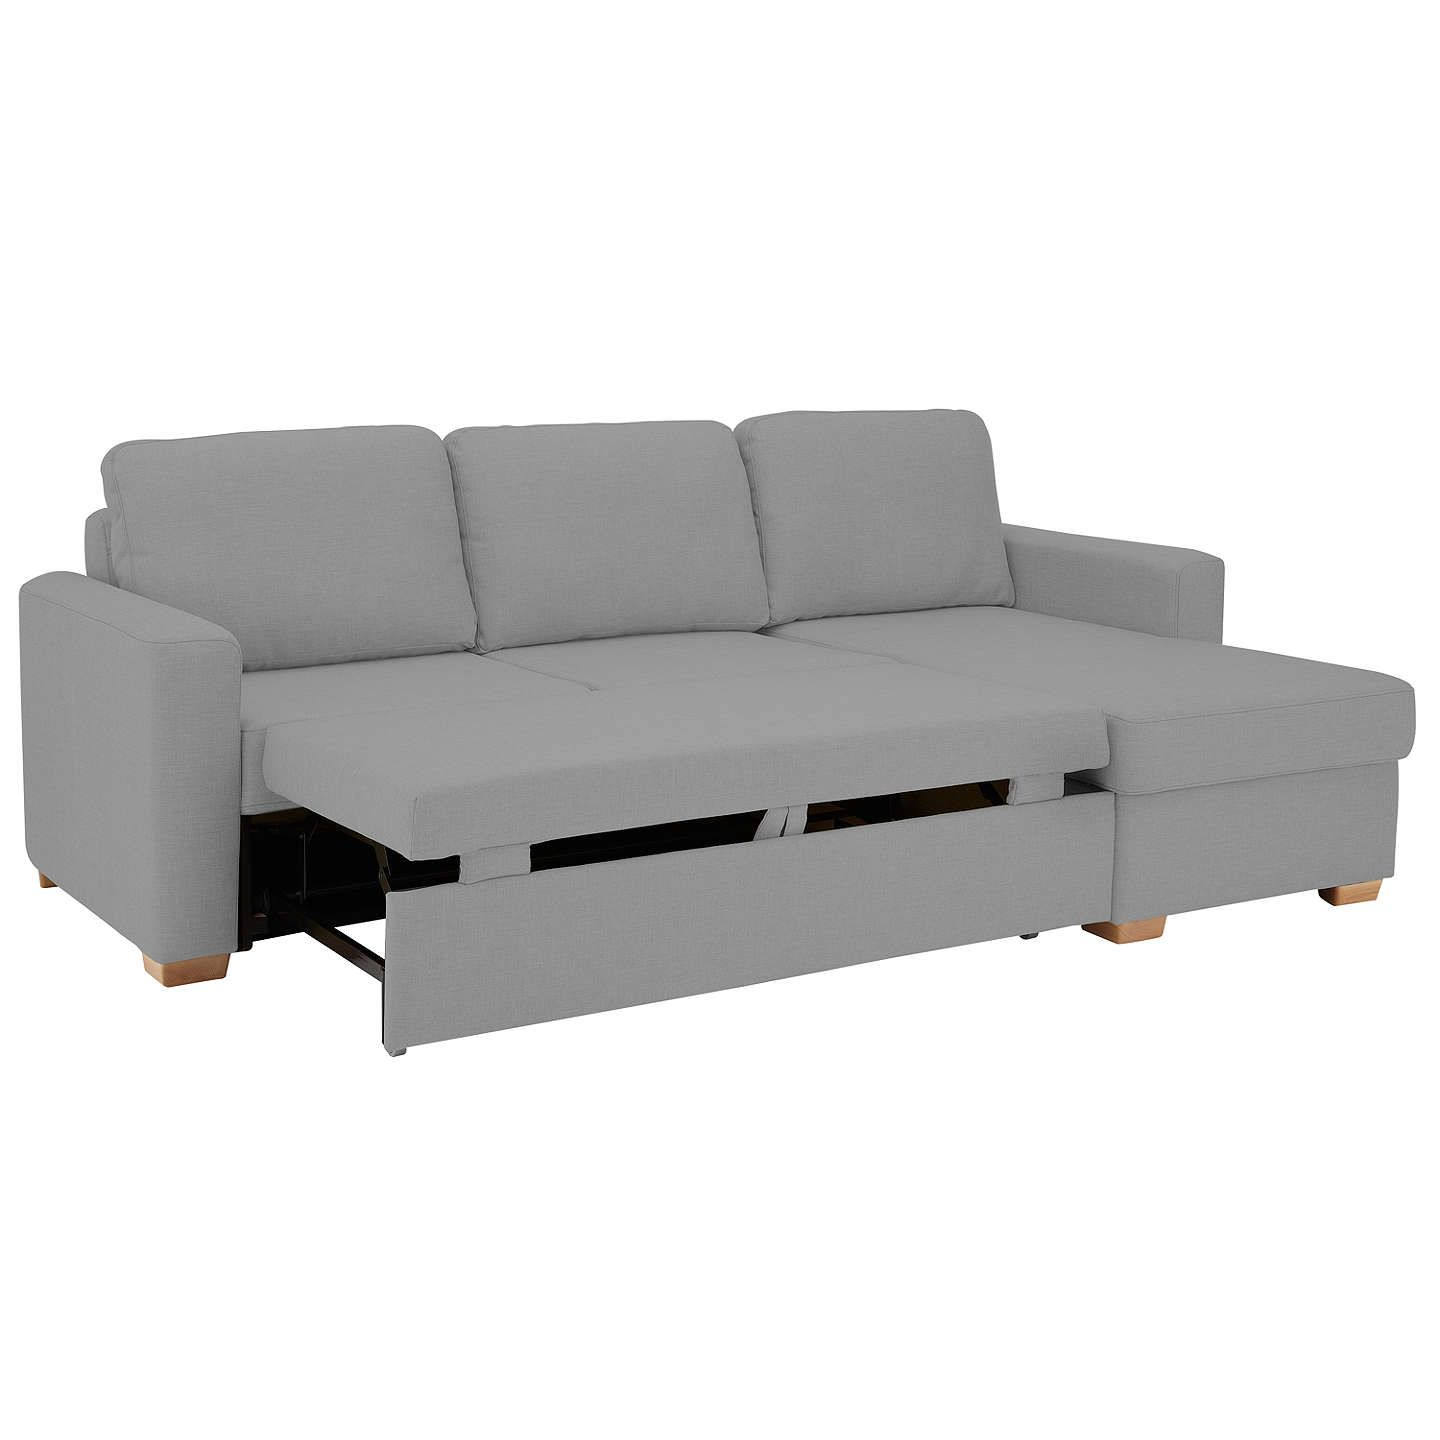 Terrific John Lewis Partners Sacha Large Sofa Bed With Foam Gmtry Best Dining Table And Chair Ideas Images Gmtryco